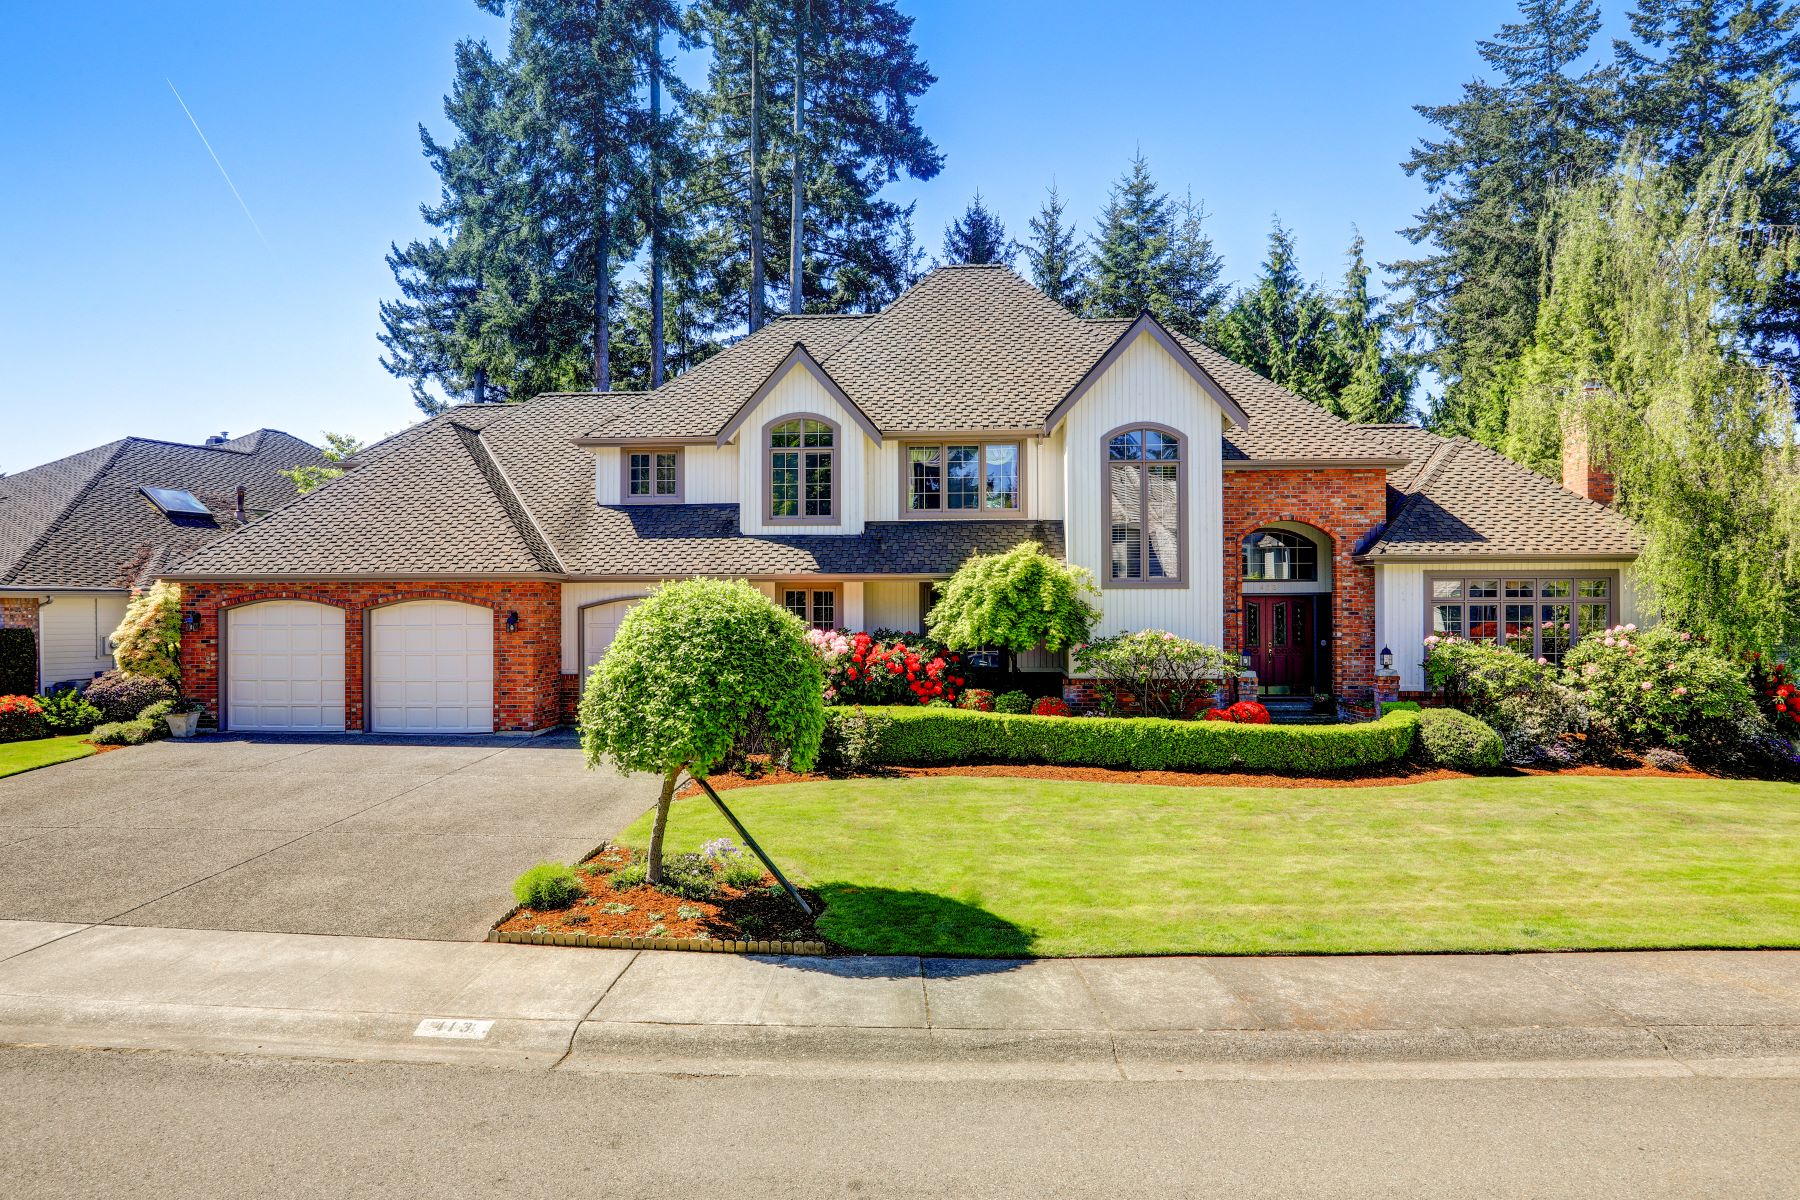 Single Family Homes for Sale at 413 SW 335th St, Federal Way, WA 98023 413 SW 335th St Federal Way, Washington 98023 United States